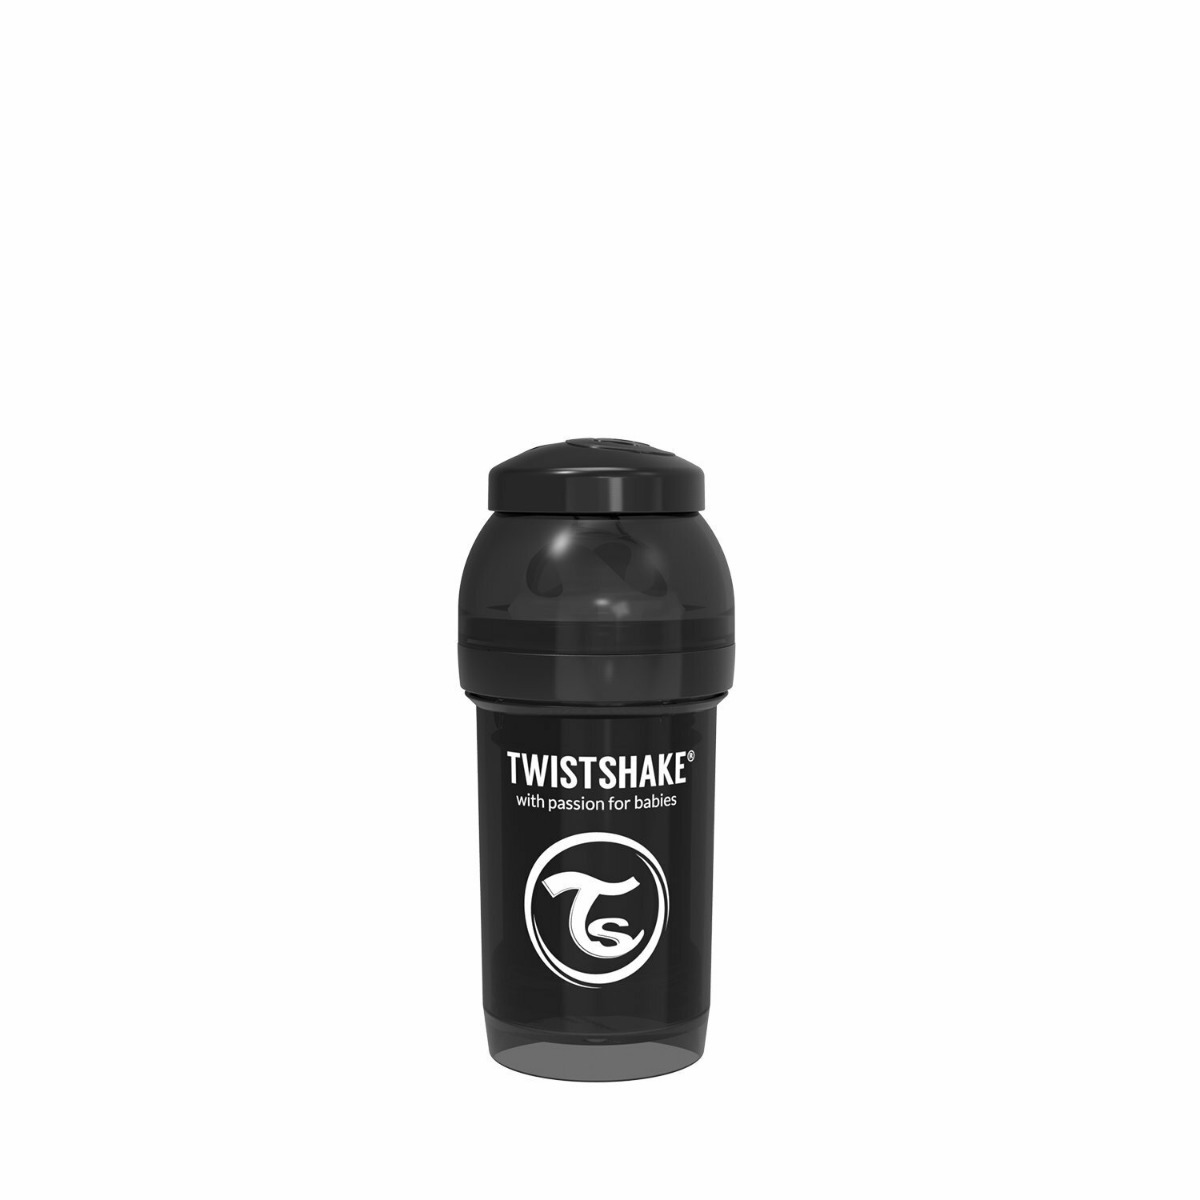 Twistshake Anti-Colic 180ml Black